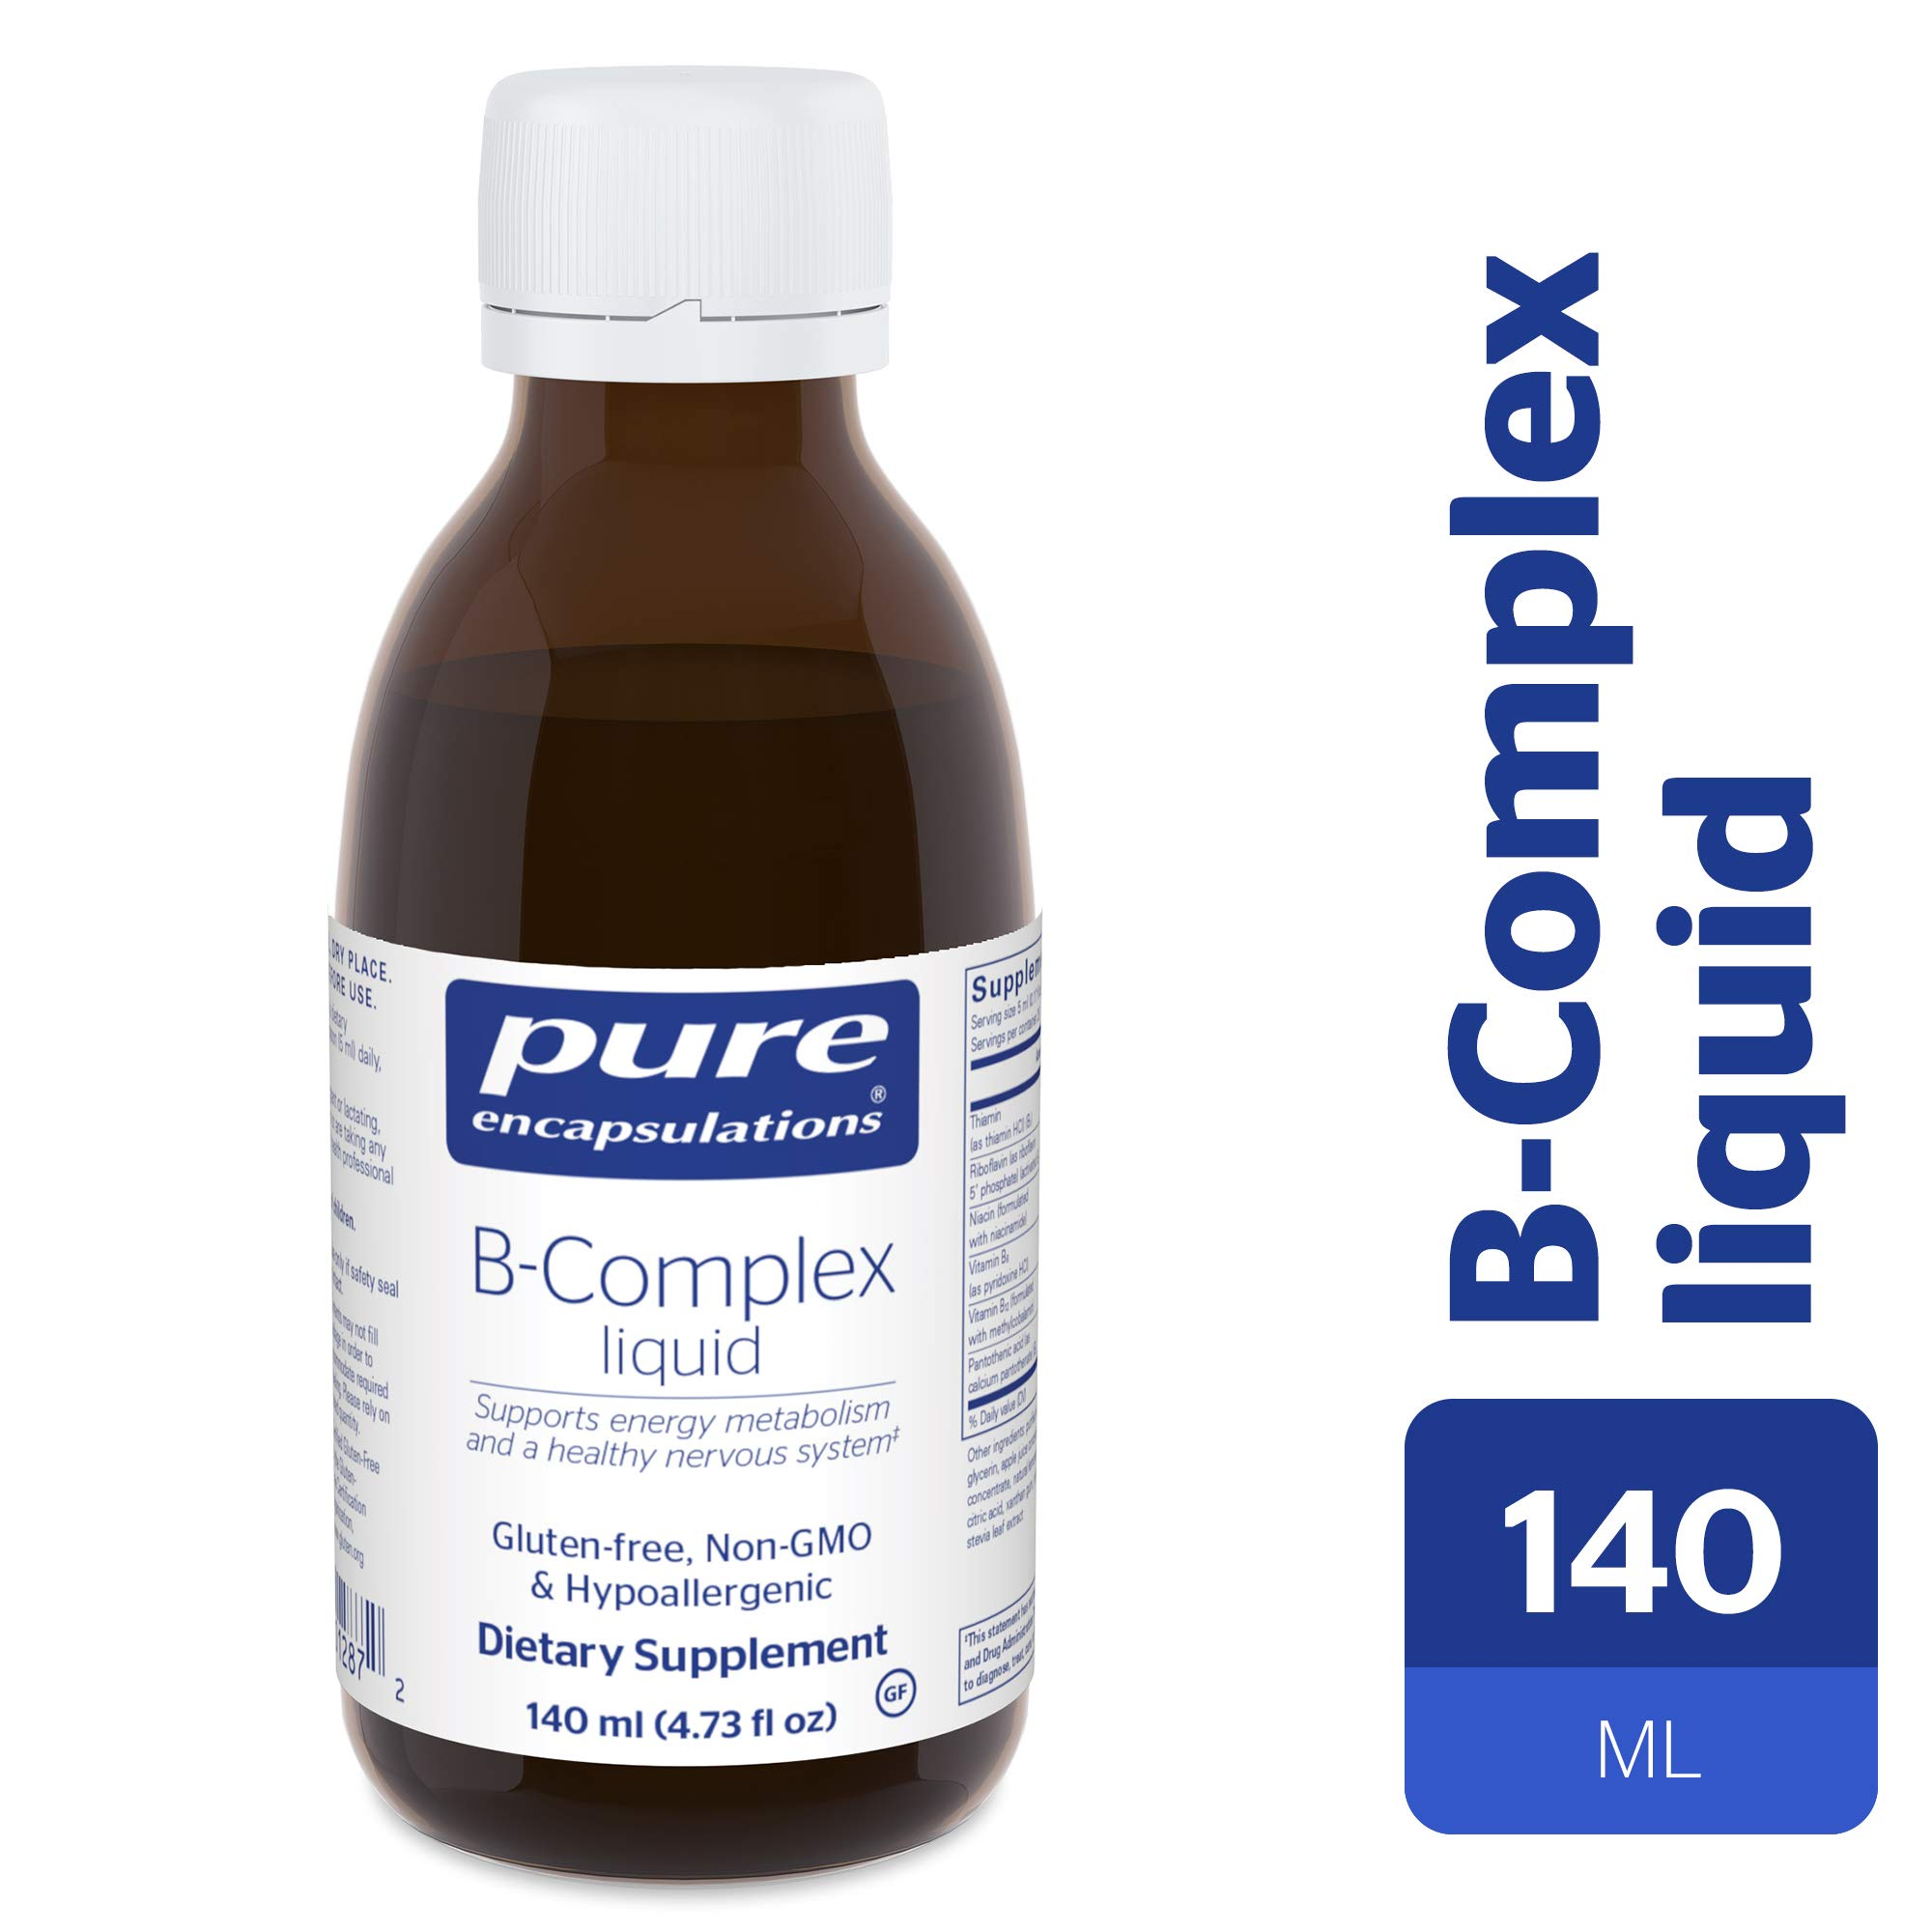 Pure Encapsulations - B-Complex Liquid - B Vitamins to Support Energy Metabolism and a Healthy Nervous System* - 140 ml (4.73 fl oz)